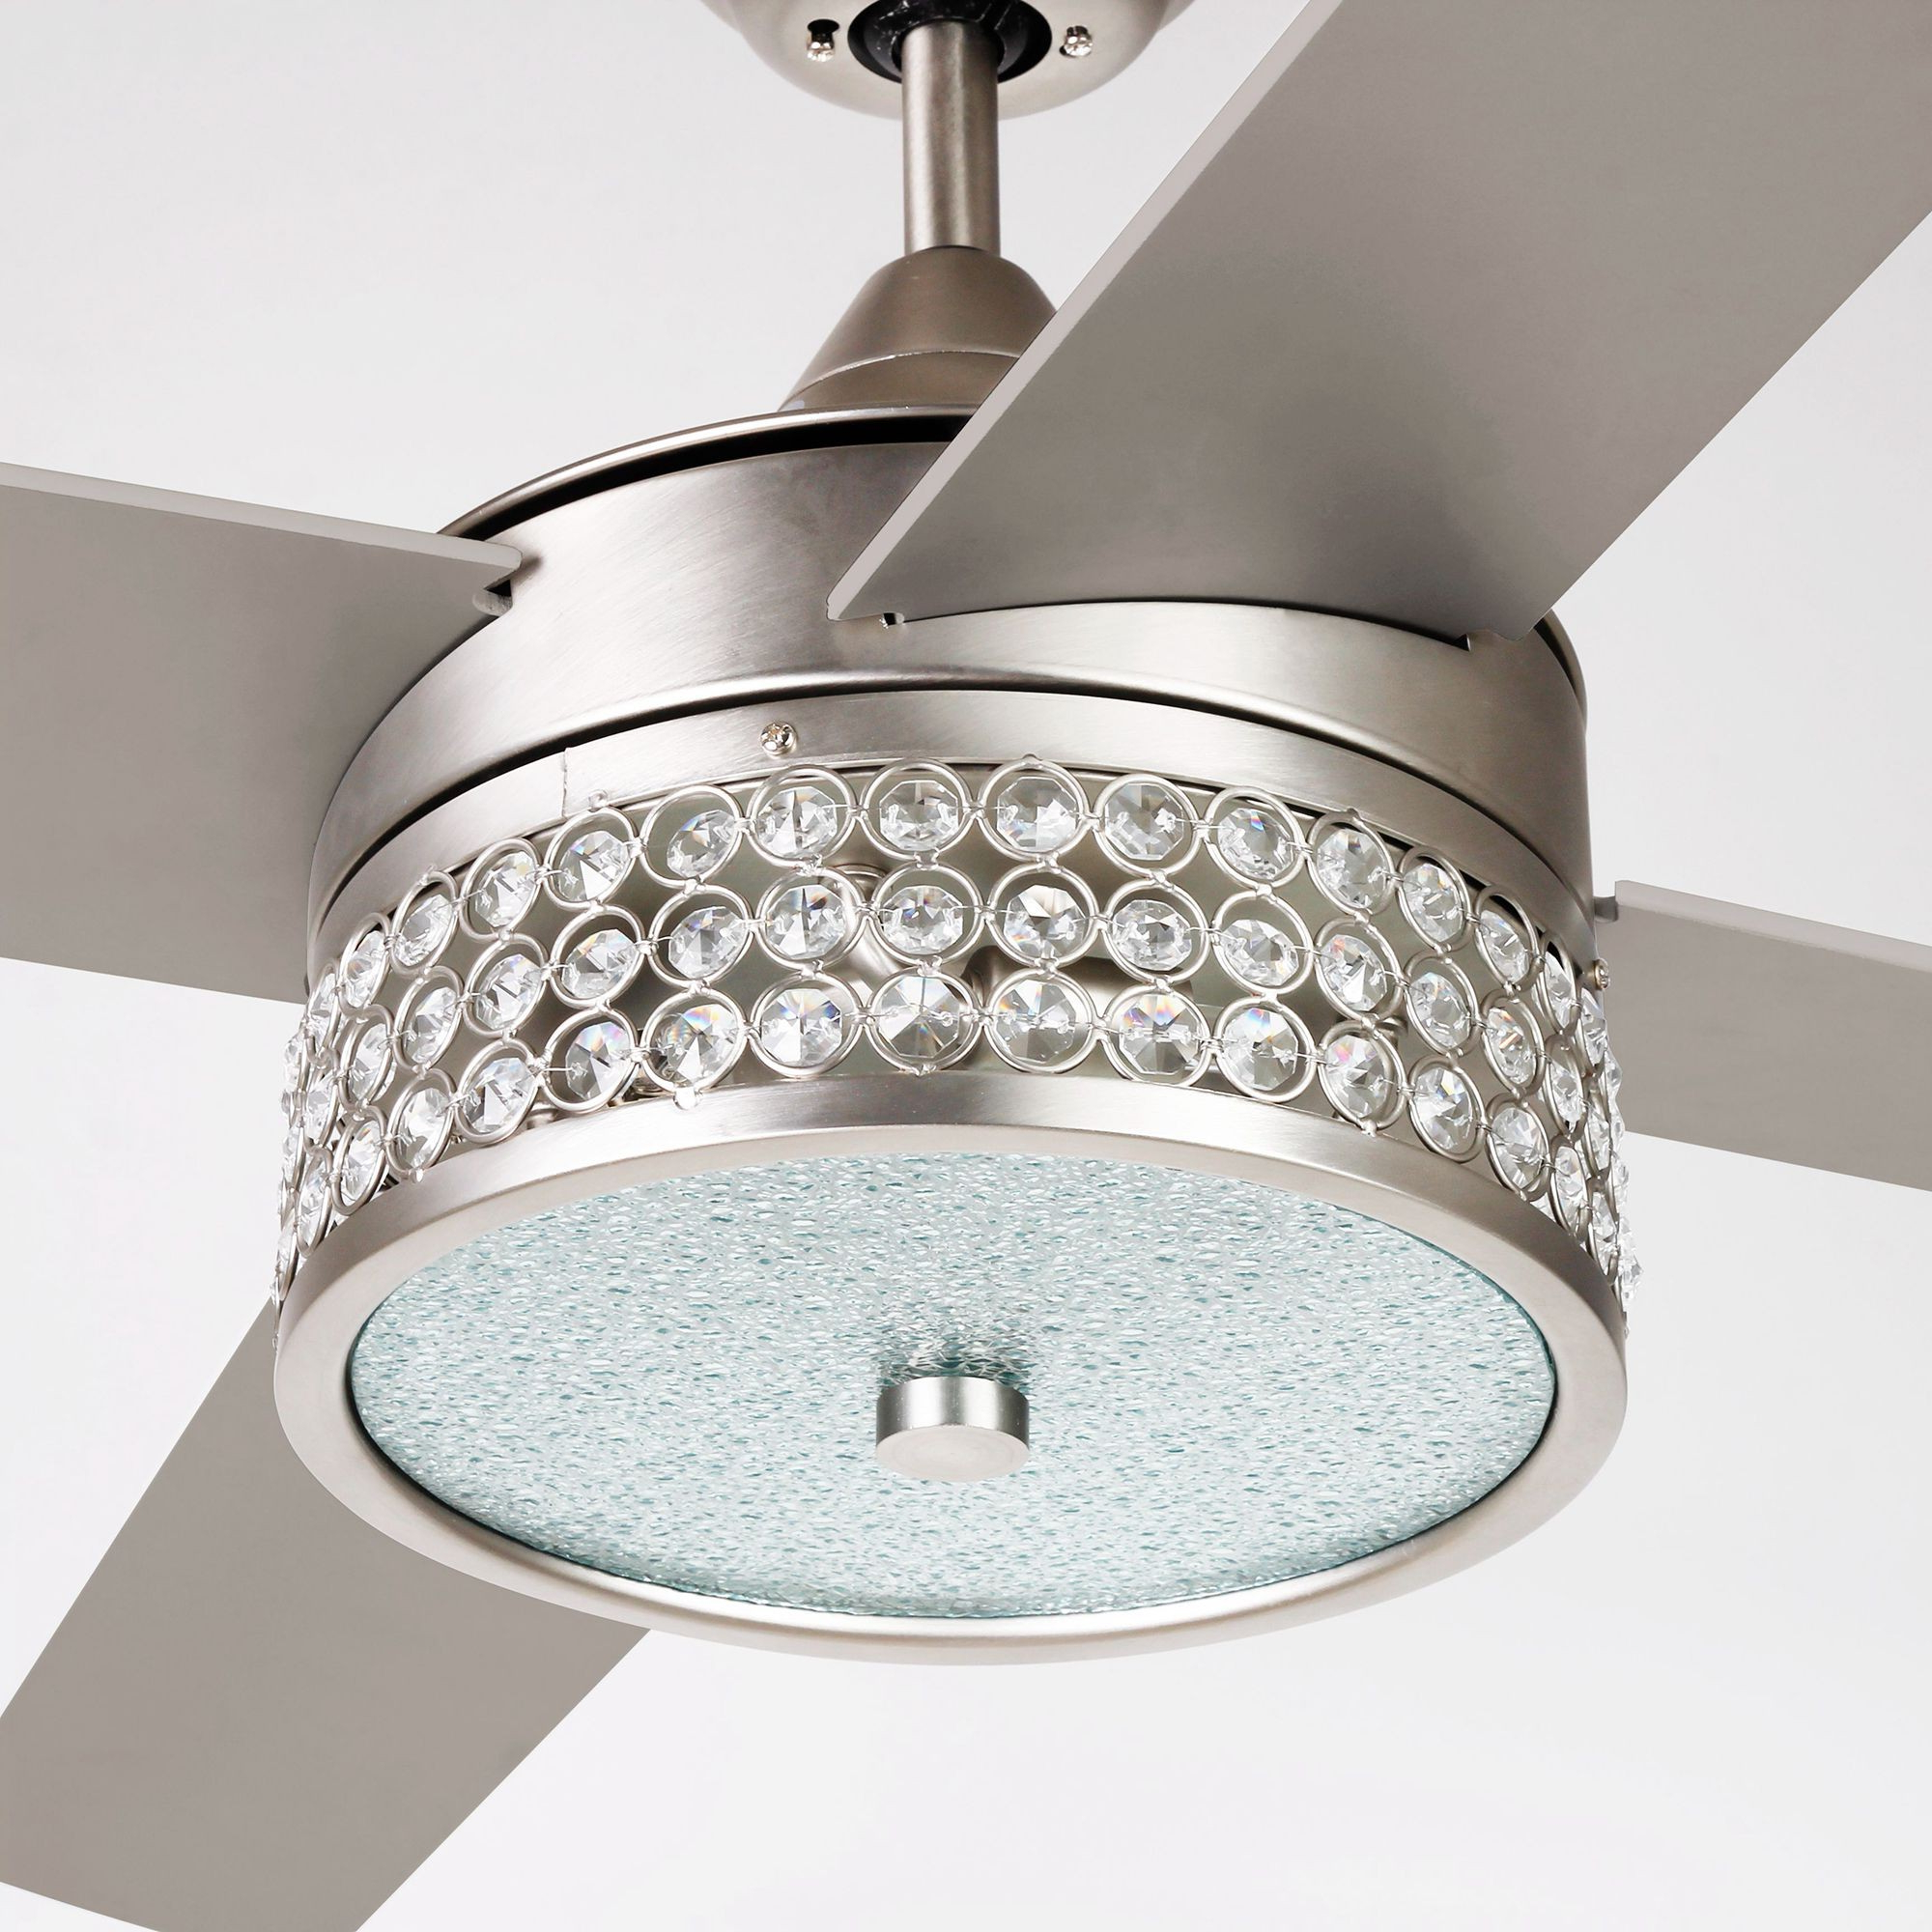 """Cason 4 Blade Ceiling Fans Pertaining To Favorite 52"""" Cason Modern Crystal Chandelier Ceiling Fan With Led Light And Remote Control, 4 Blades, Satin Nickel (View 7 of 20)"""